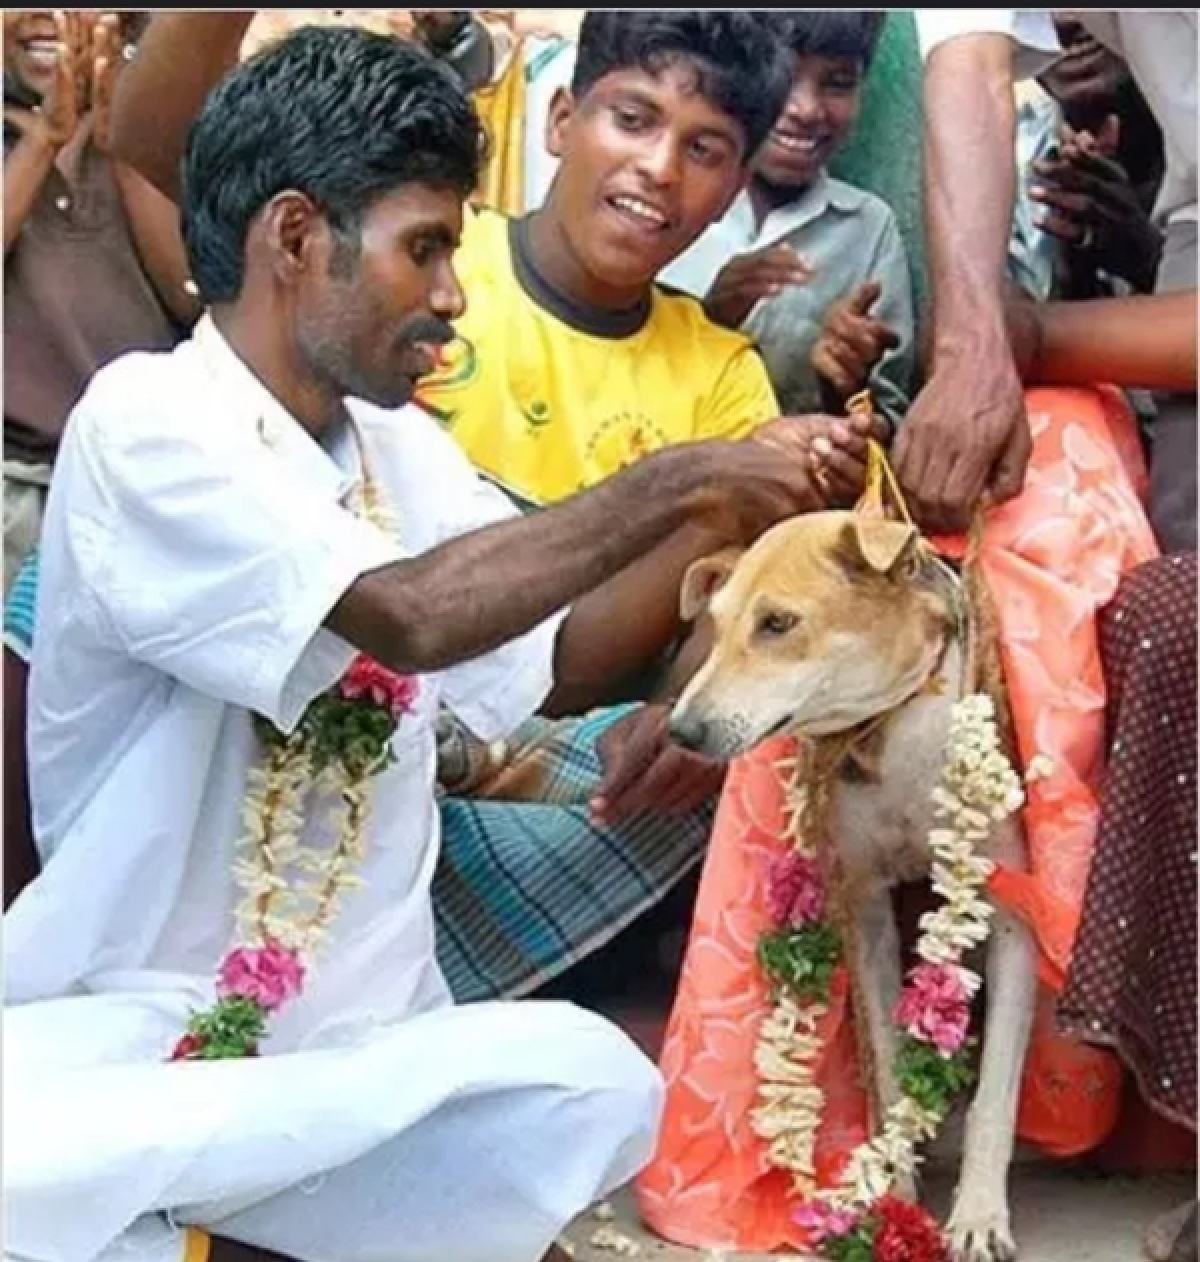 Scourge of superstitions: The lengths people go to in order to appease the gods